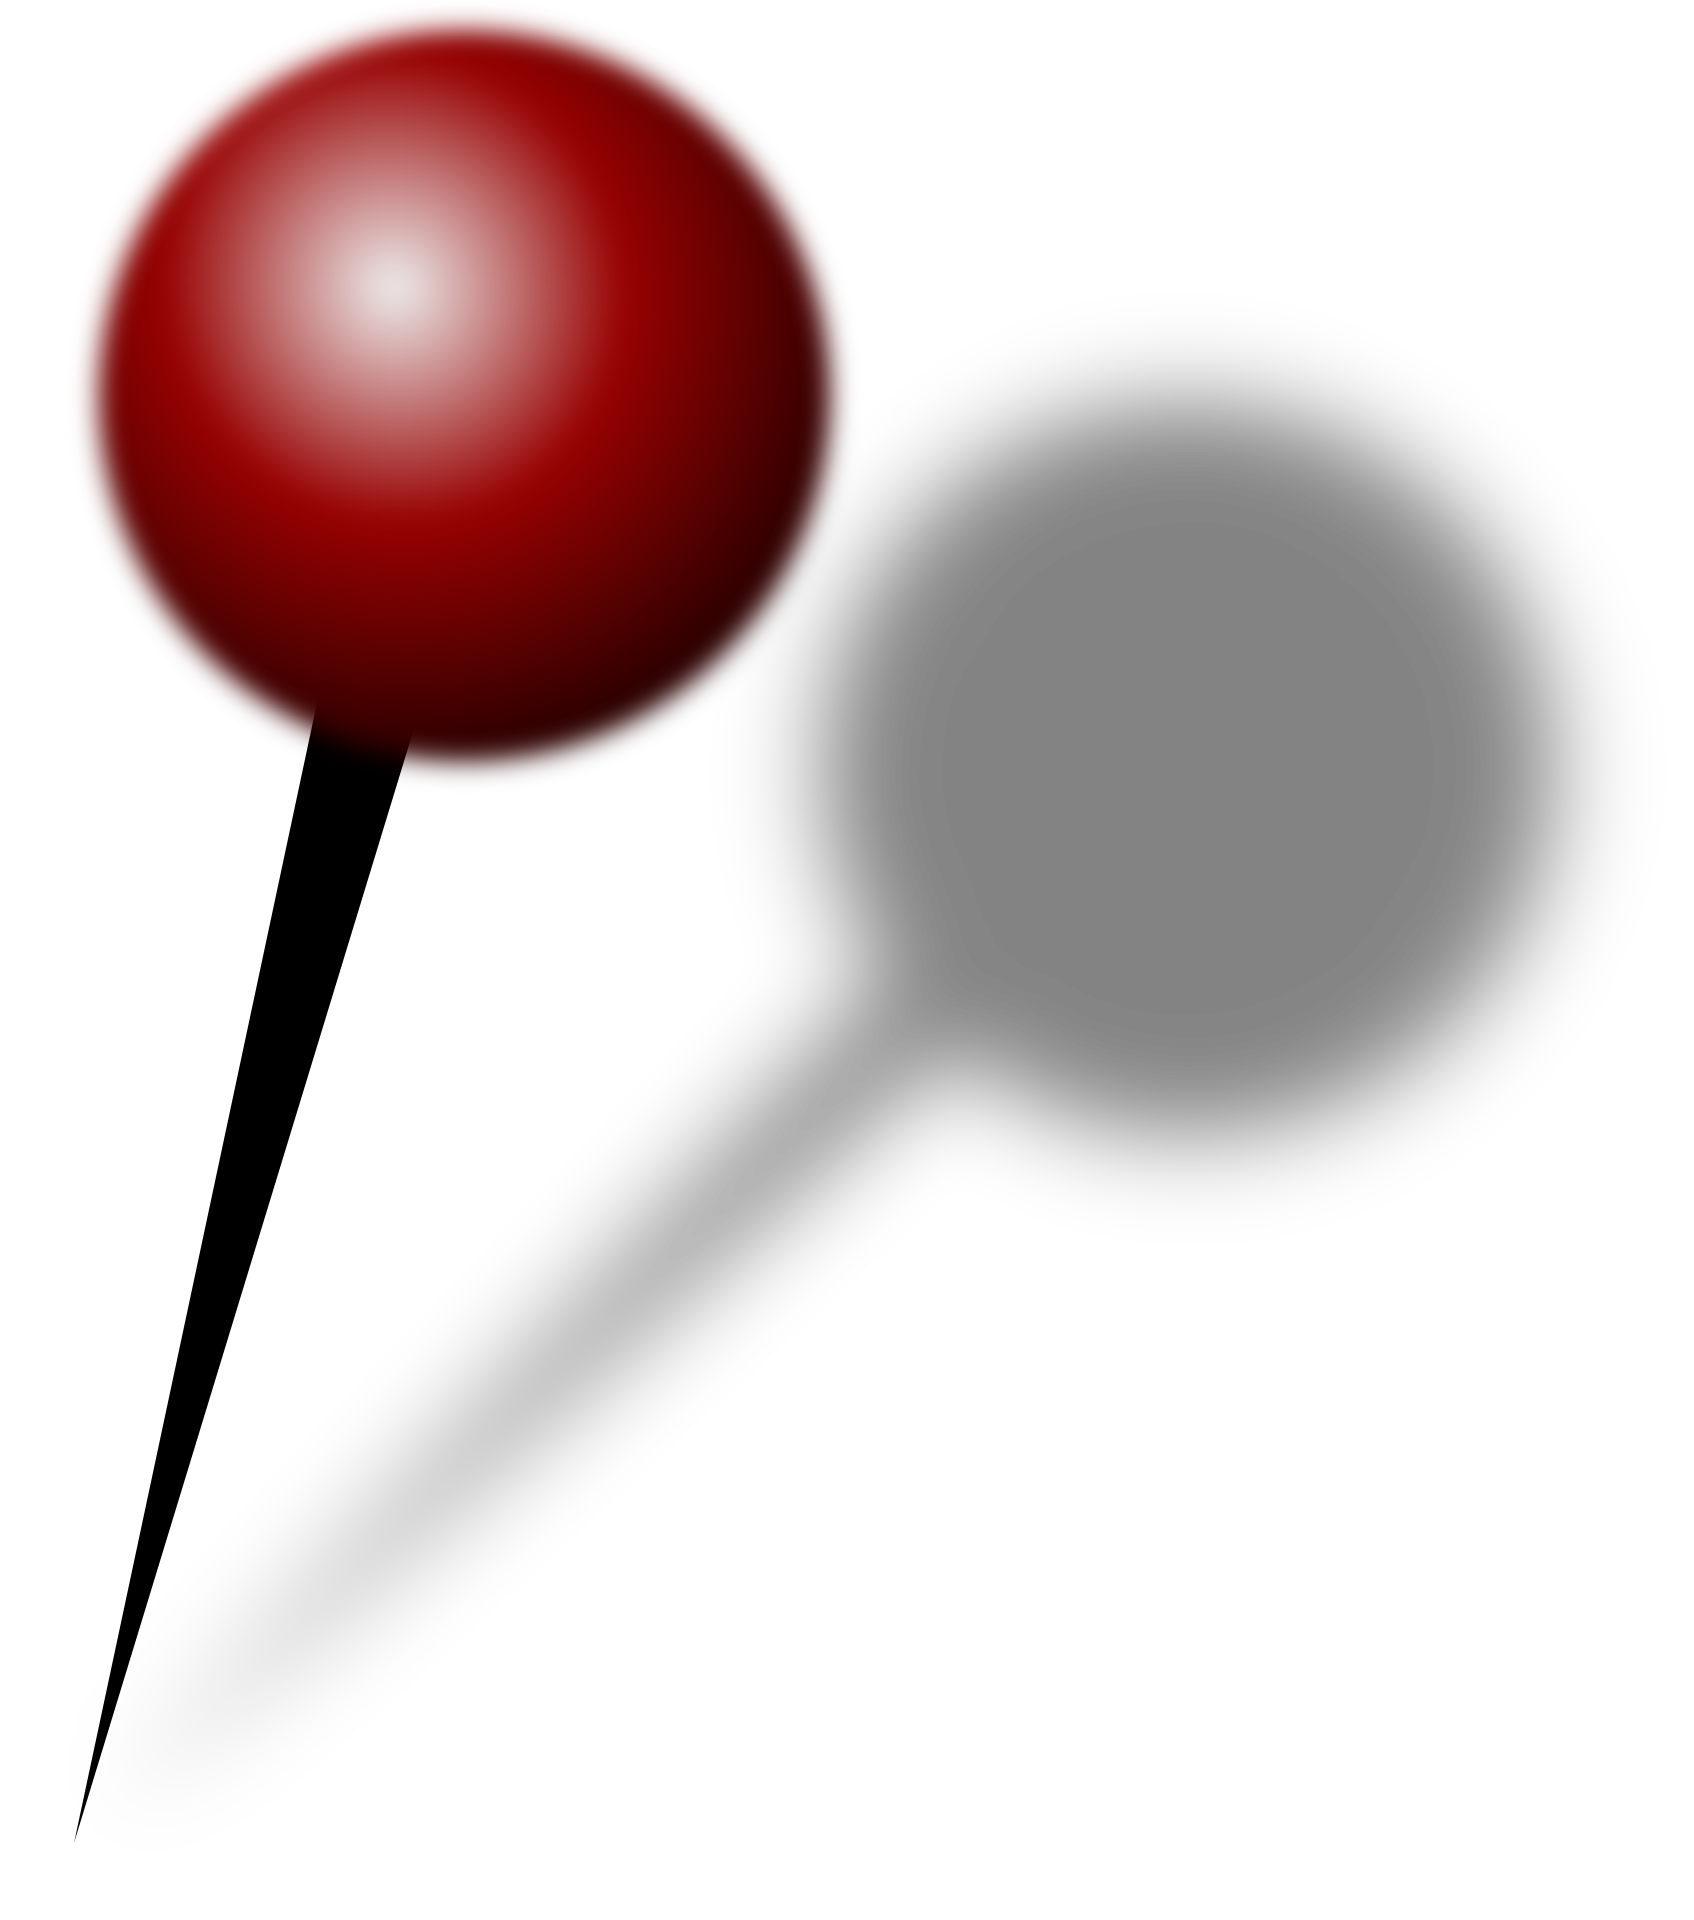 File:Red push pin.png.